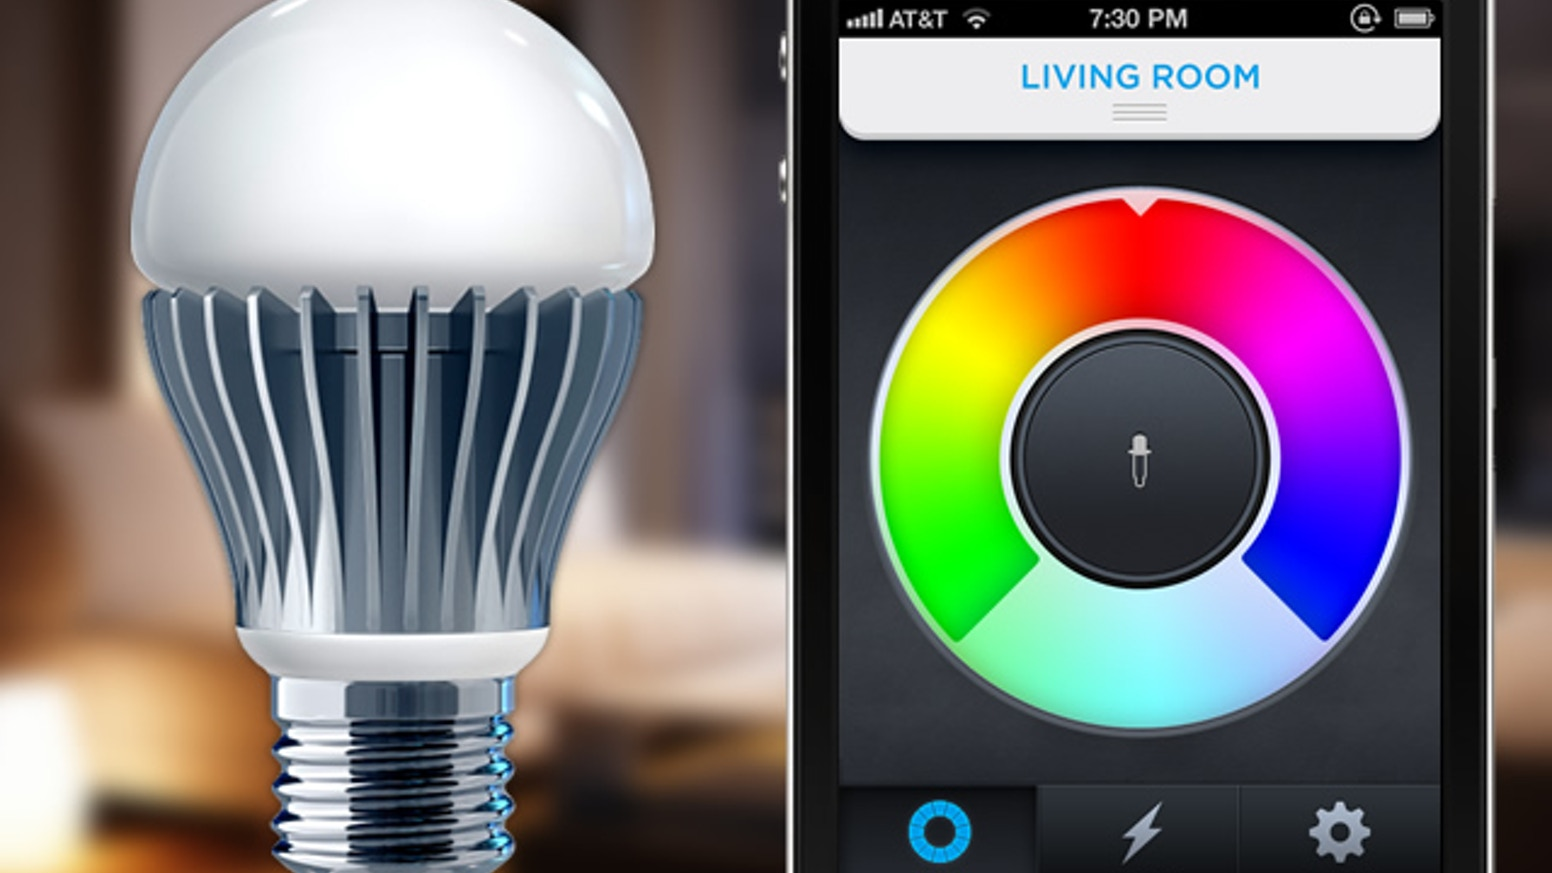 Lifx: the light bulb reinvented by phil bosua u2014 kickstarter